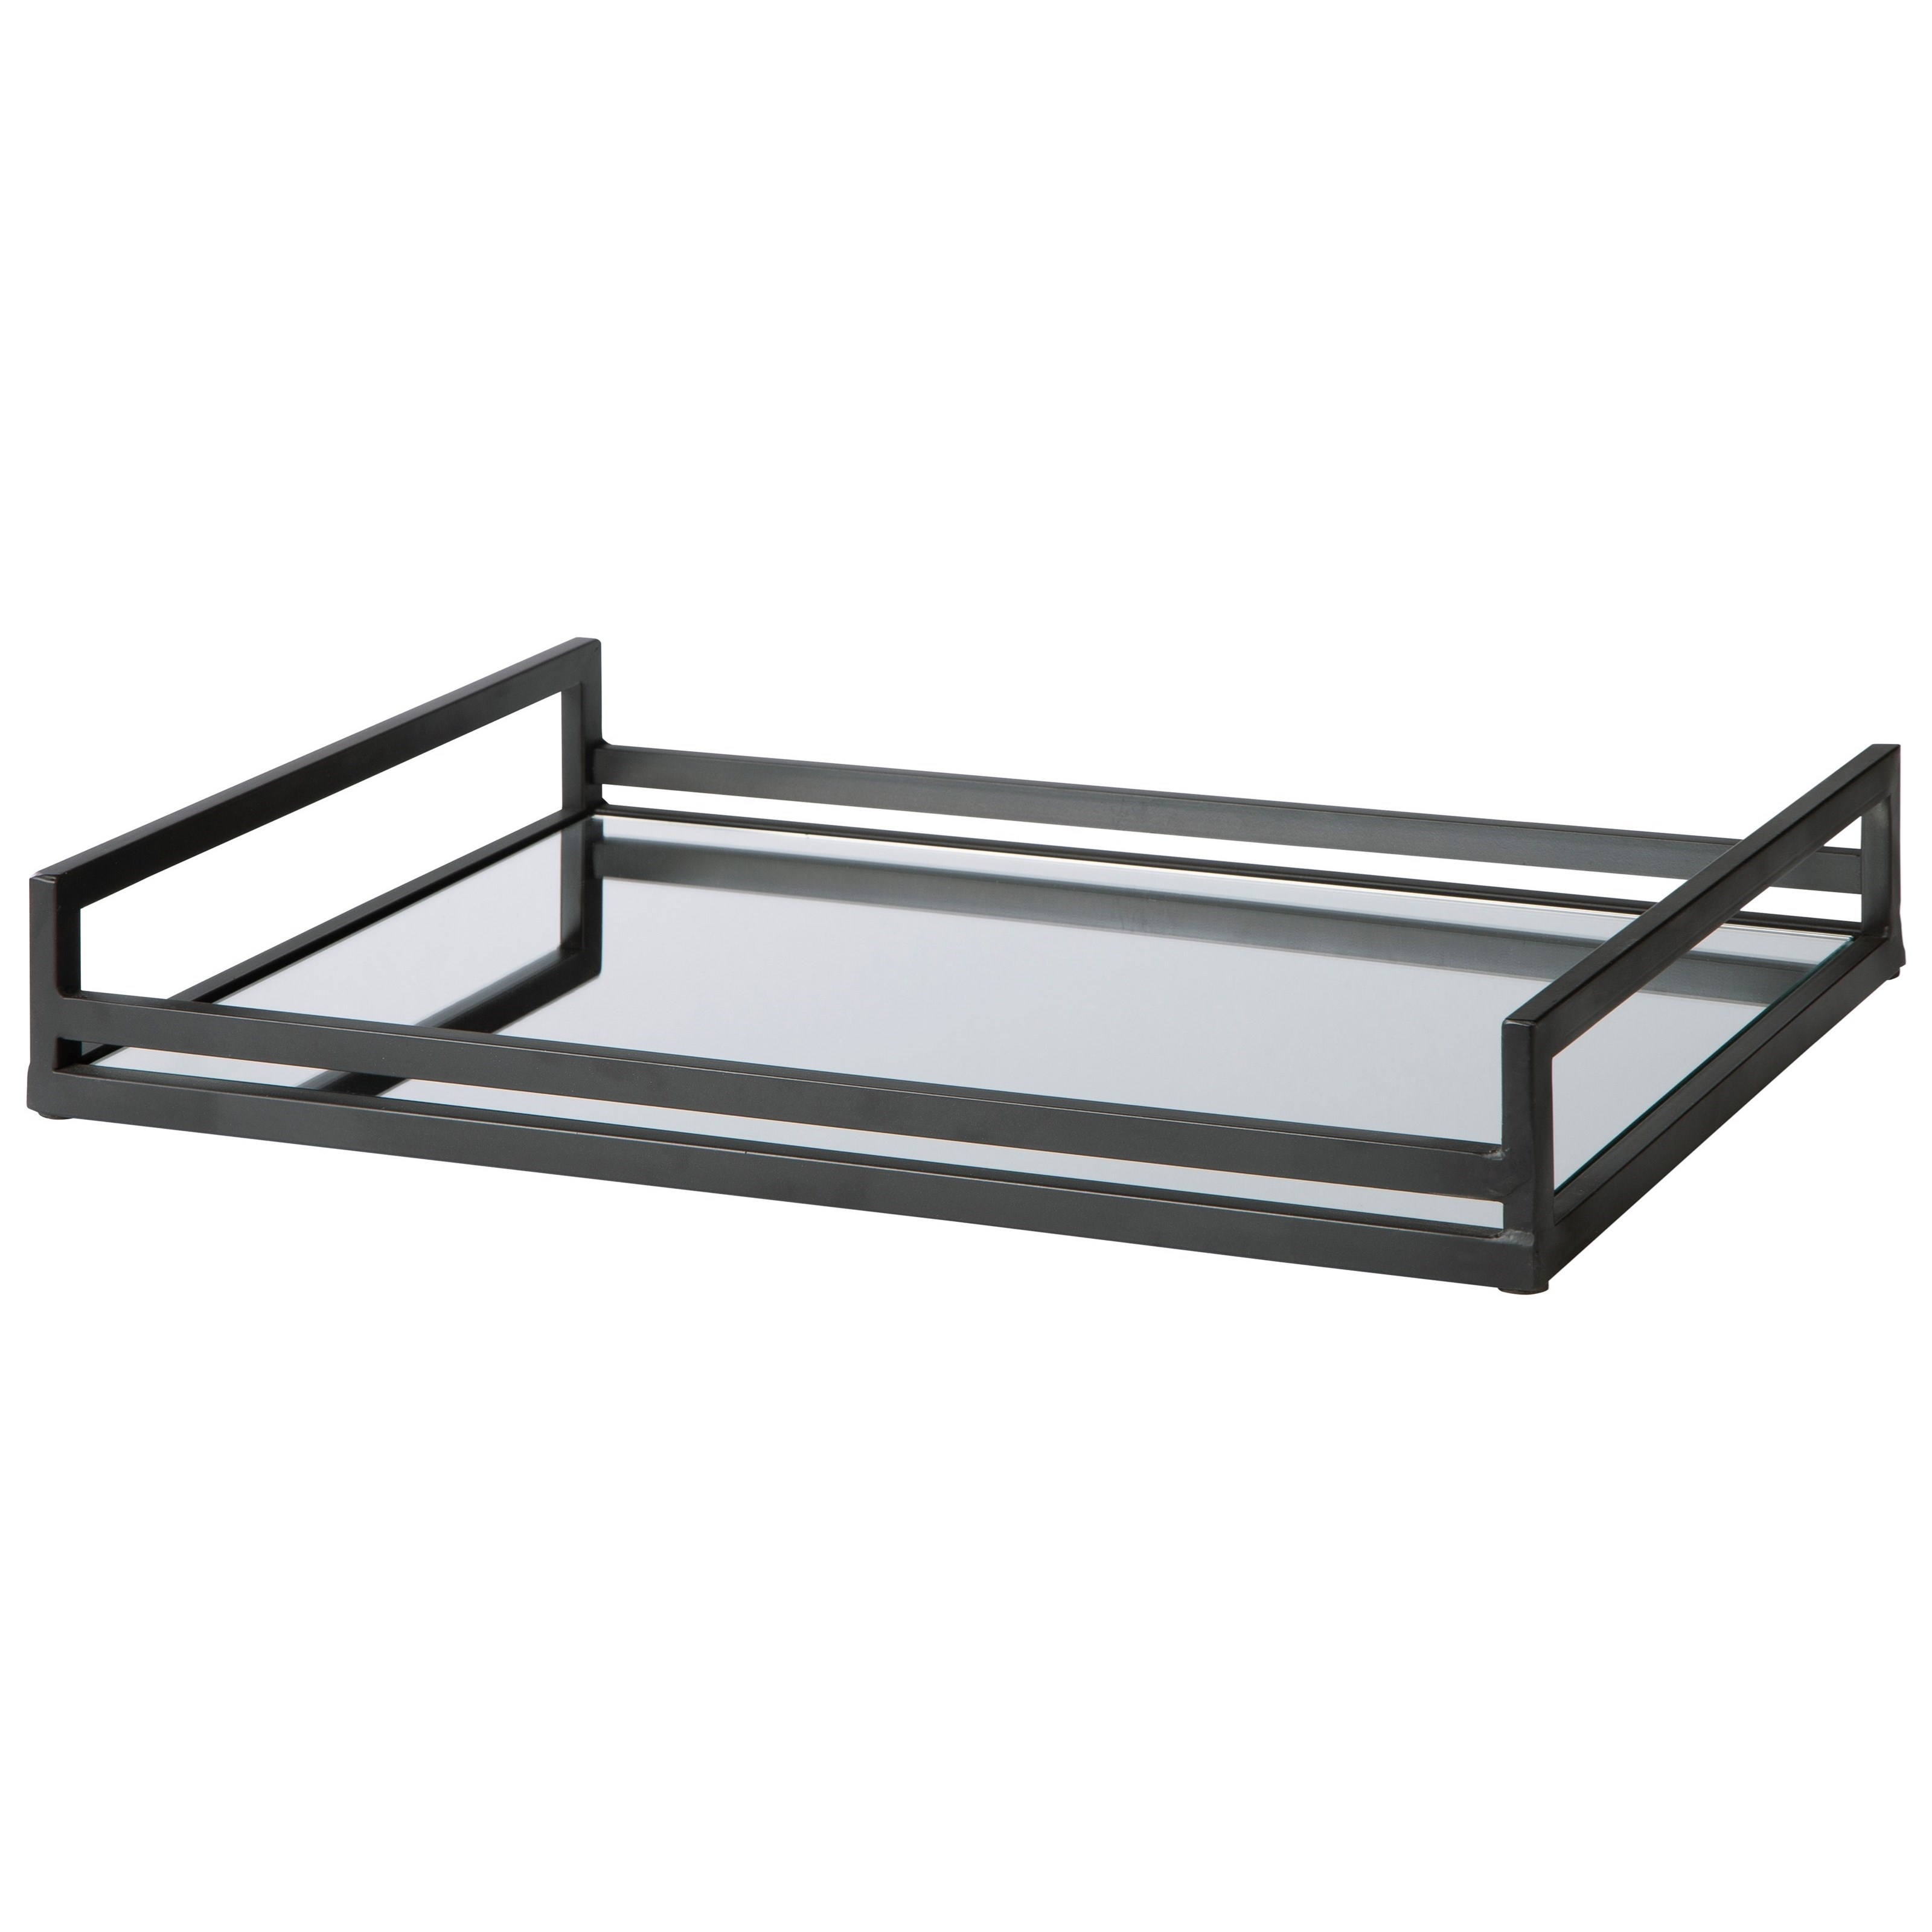 Accents Derex Black Tray by Signature Design by Ashley at Northeast Factory Direct